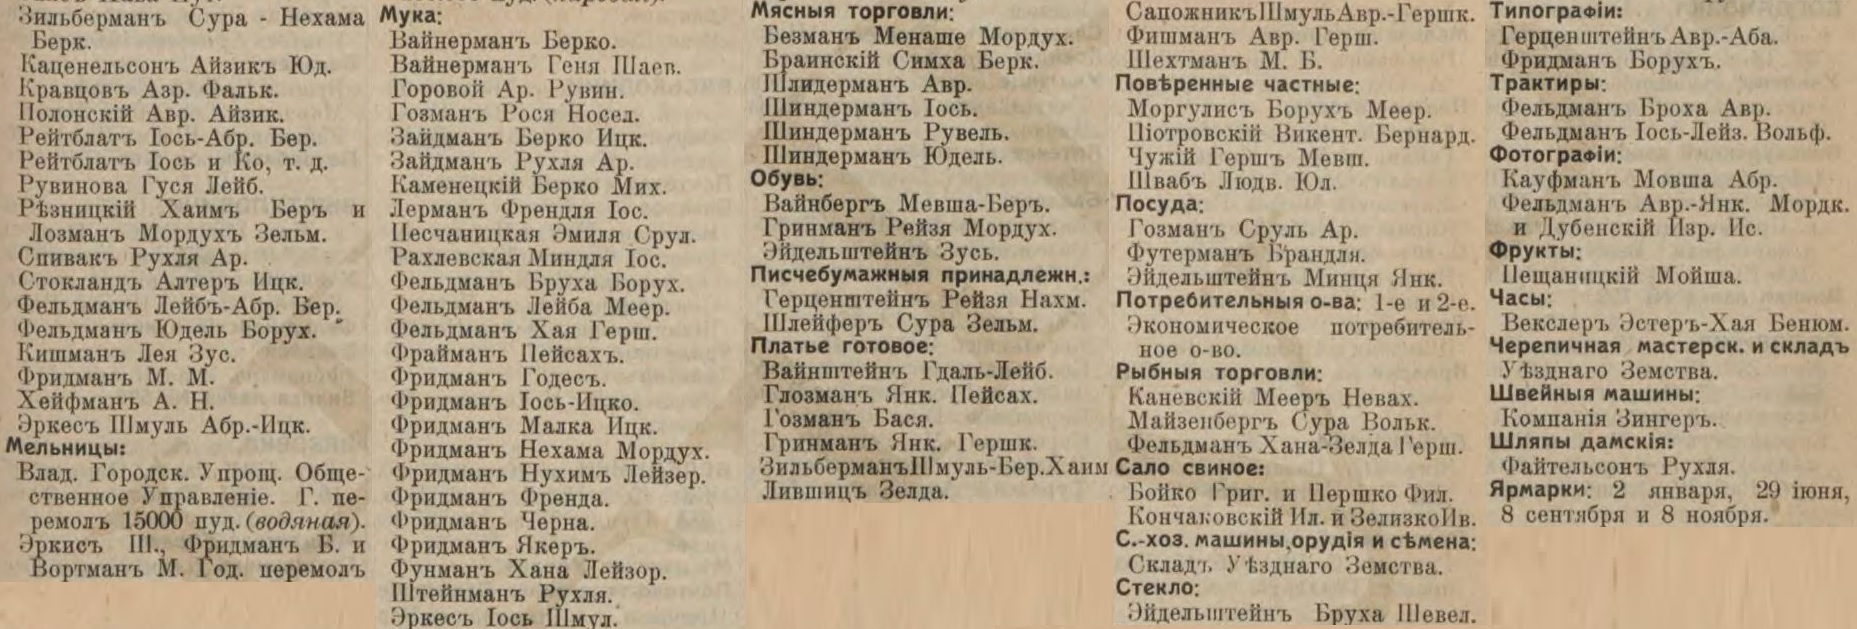 Ovruch entrepreneurs list from Russian Empire Business Directories by 1913. Part 2